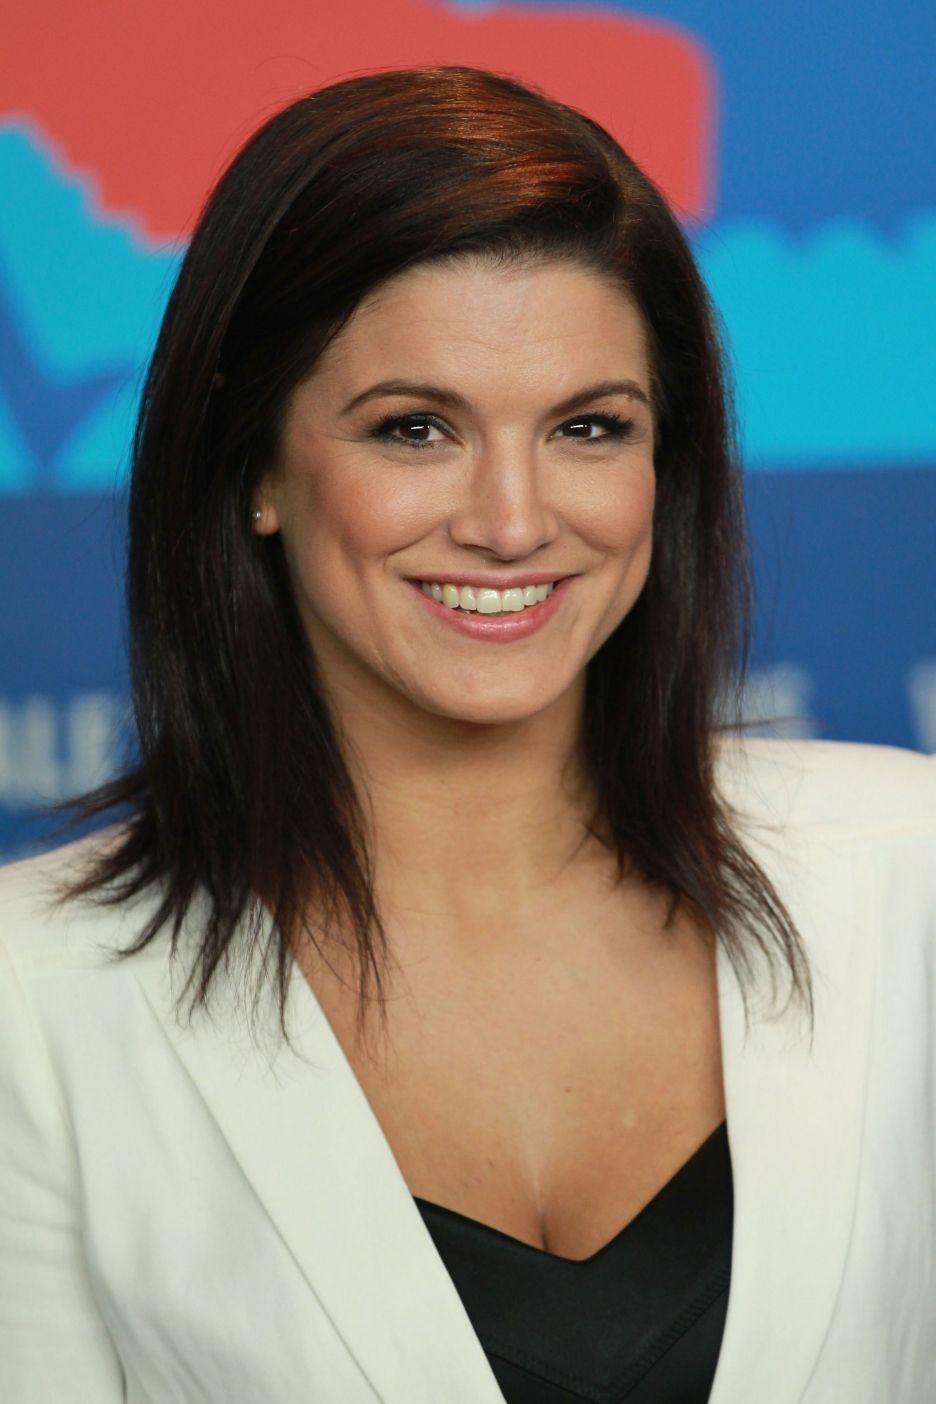 Gina carano diet plan and workout routine healthy celeb - On August 2009 Carano Would Also Headline Strikeforce Carano Vs Cyborg With Cristiane